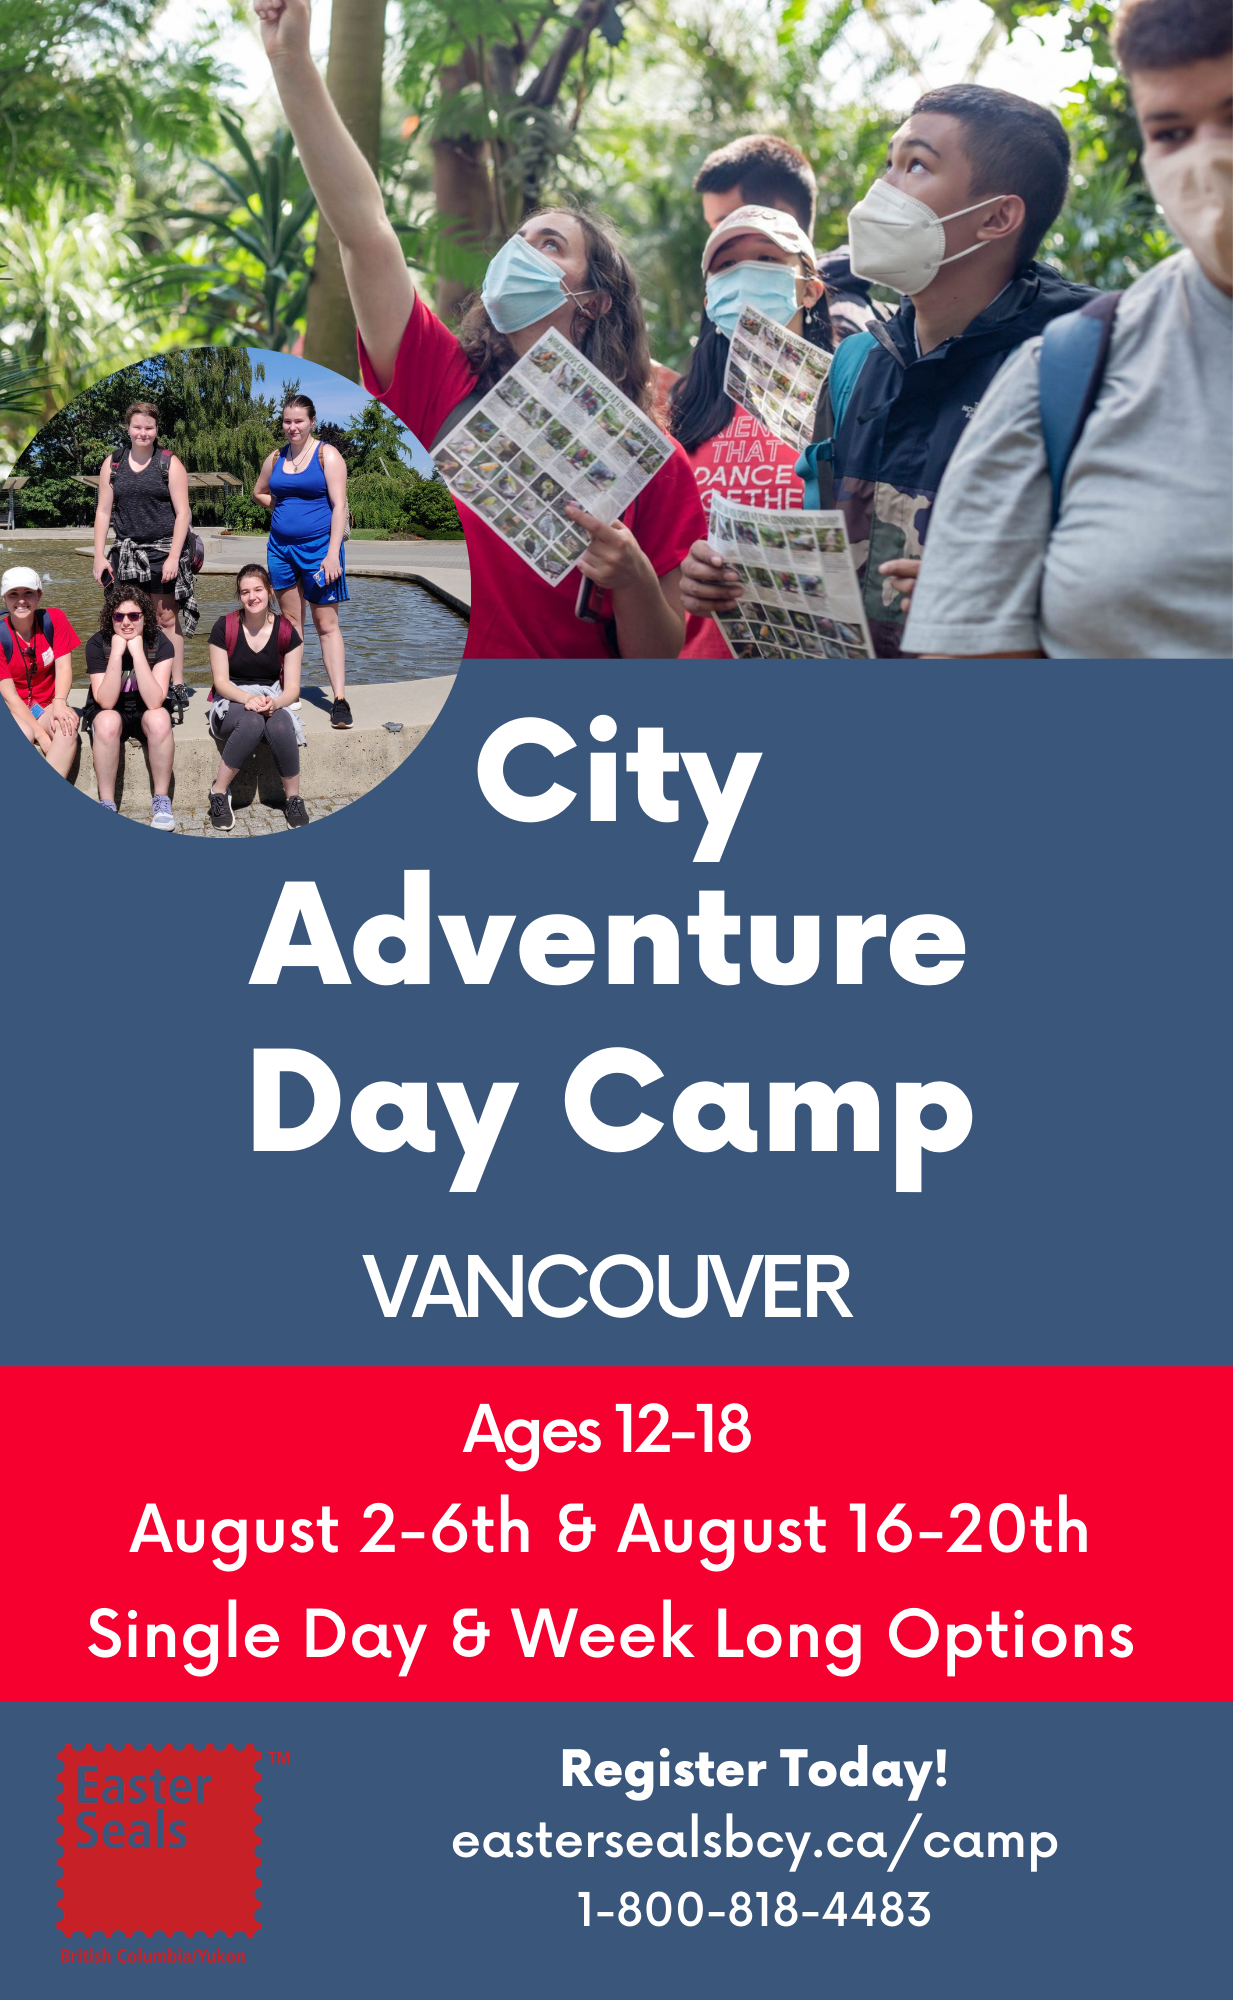 City Adventure Day Camp in Vancouver - Single Day & Week Long Options (Ages 12-18)